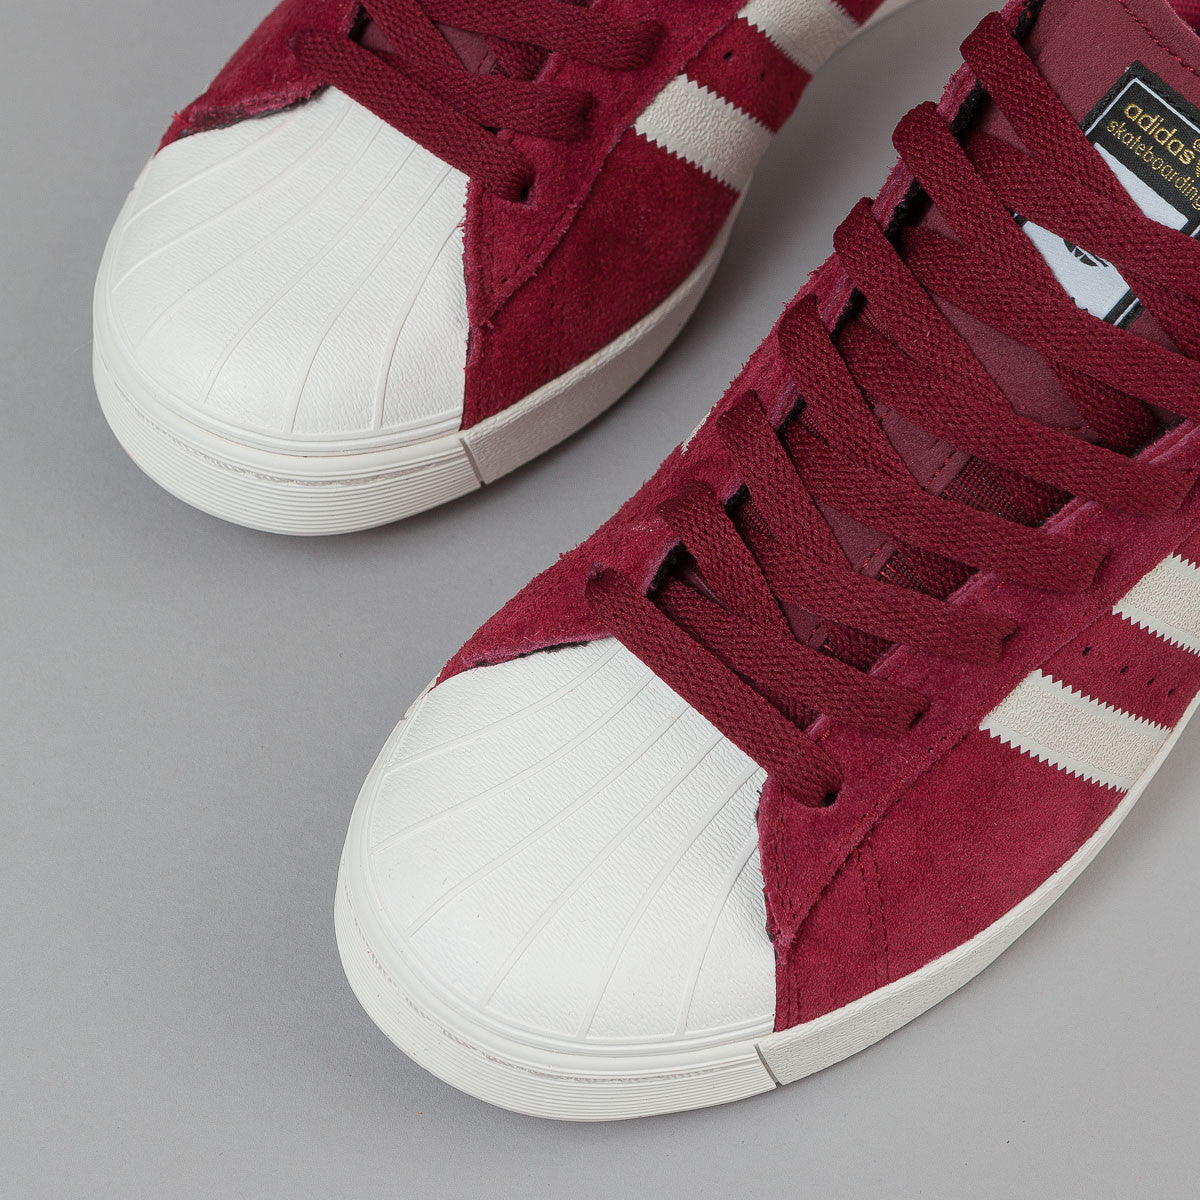 Adidas Superstar Vulc ADV Shoes - Collegiate Burgundy / Chalk White